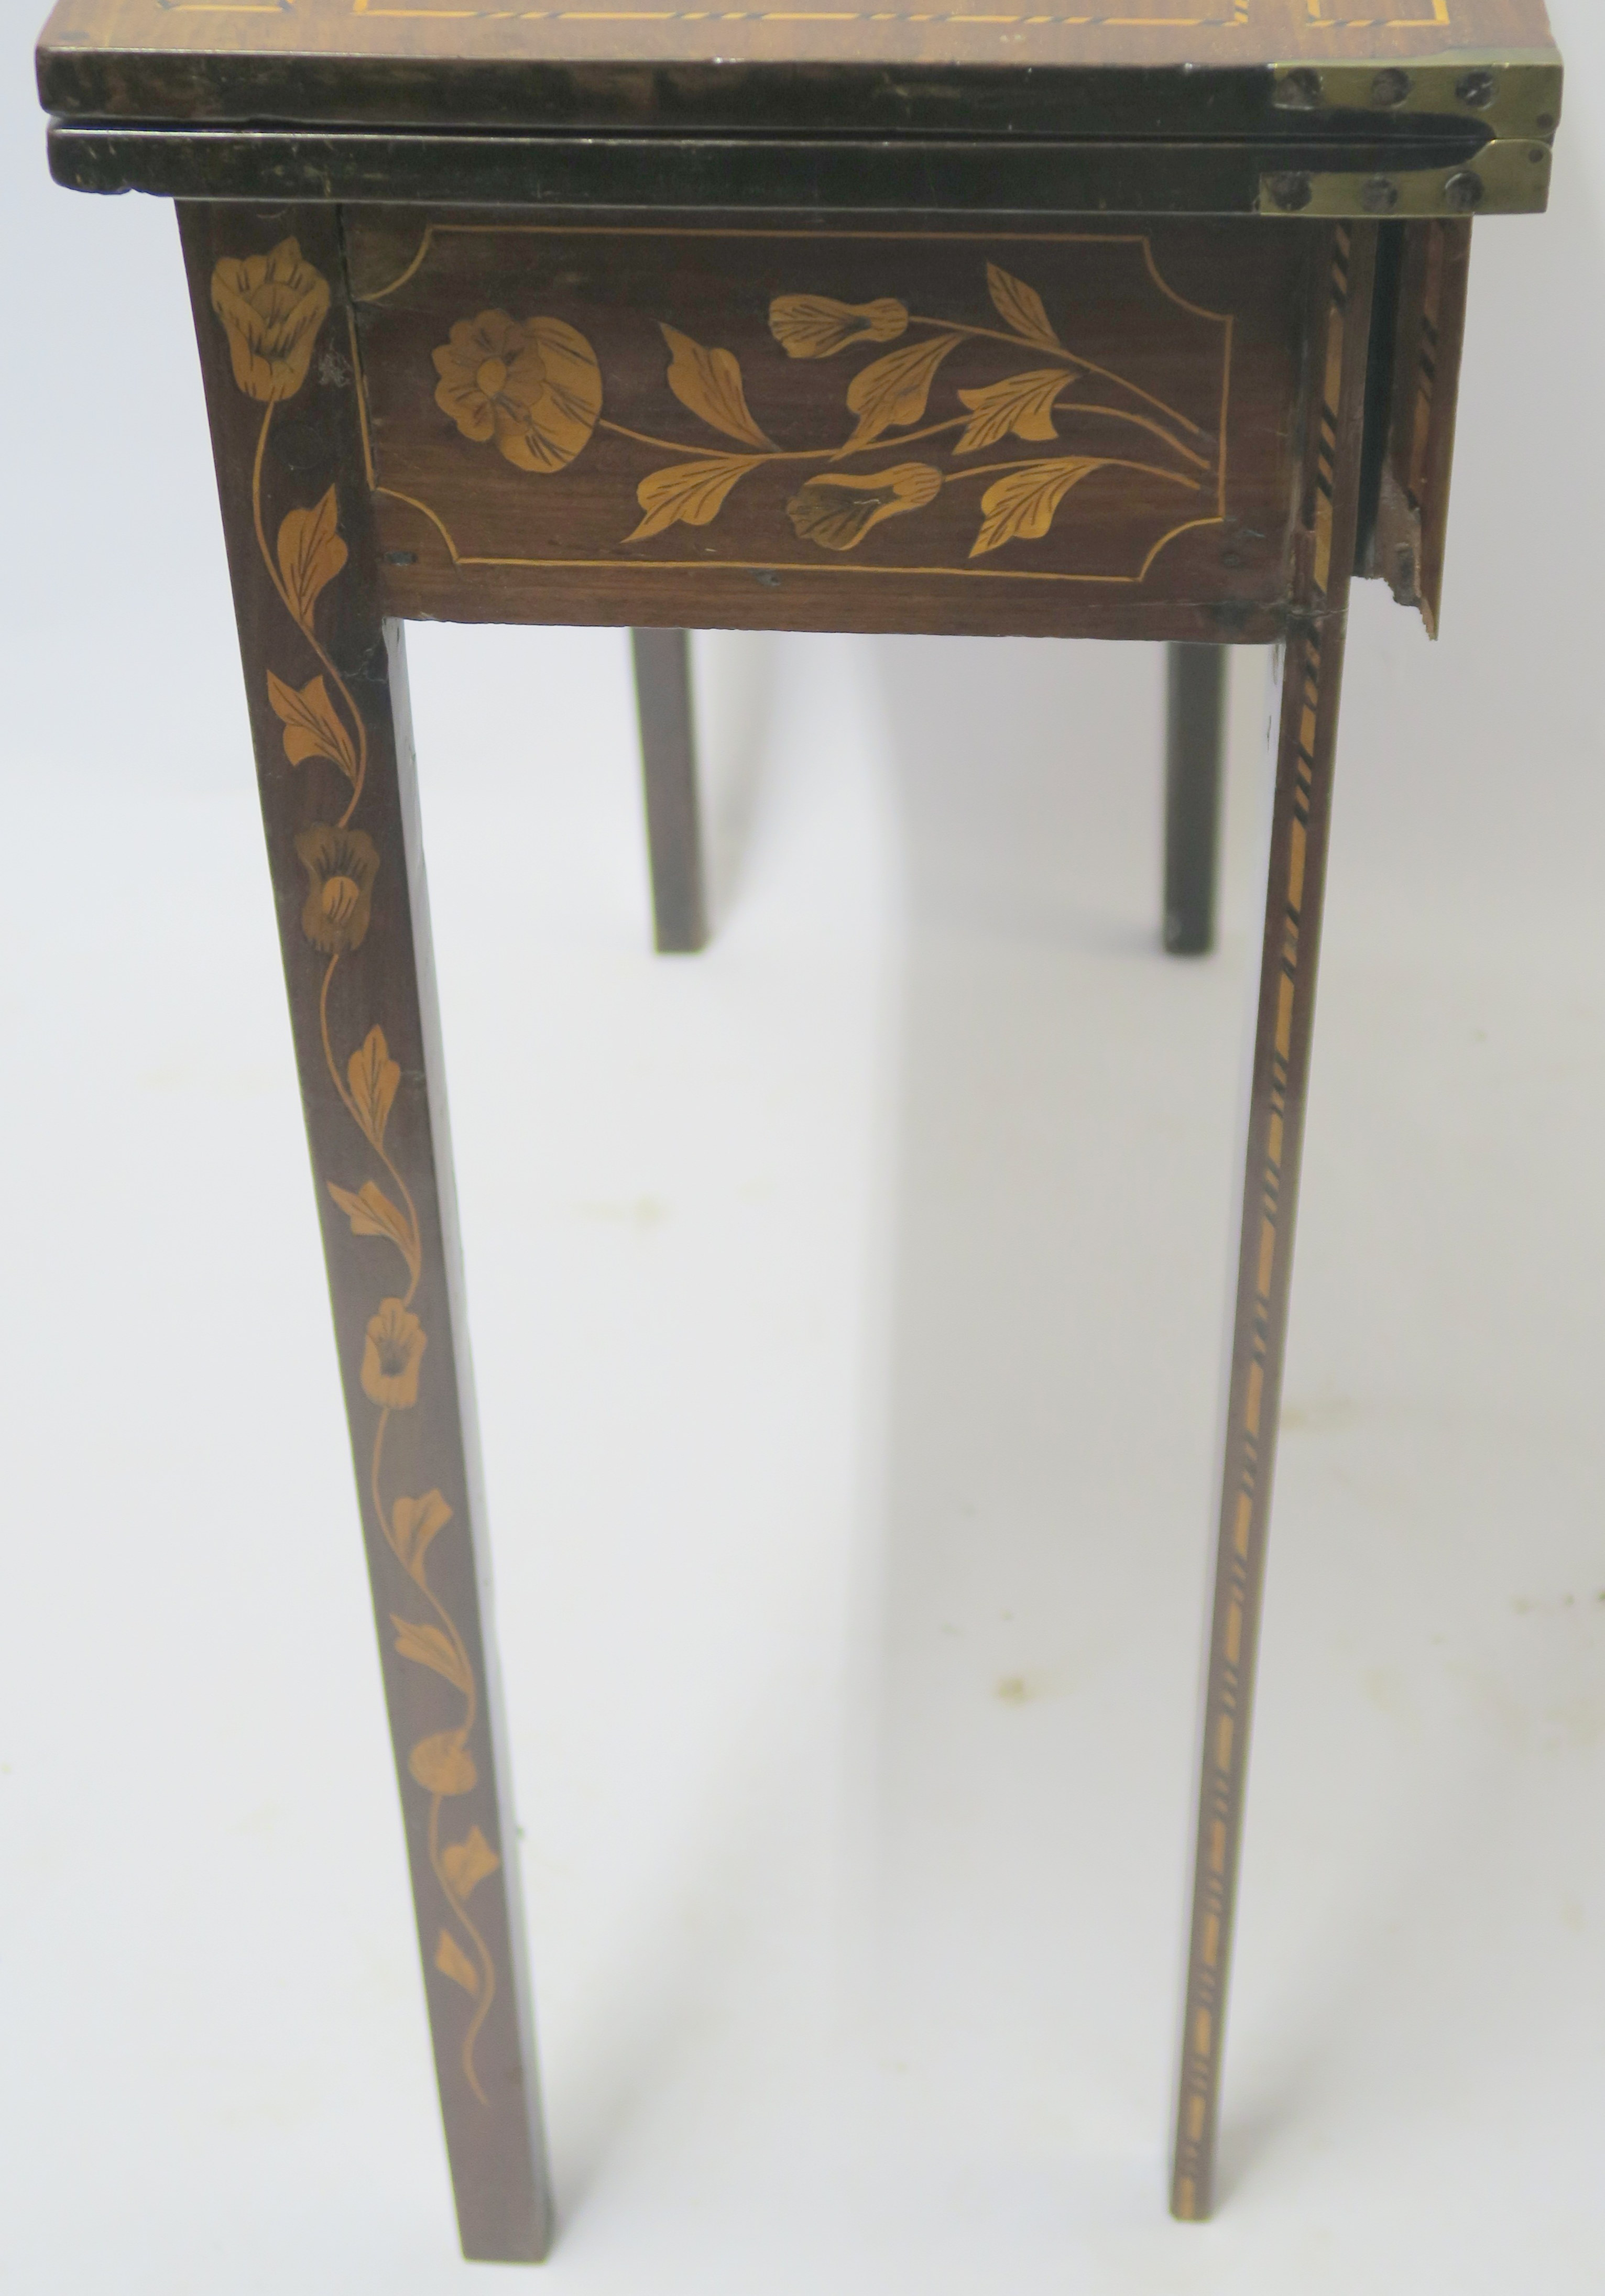 A DUTCH MARQUETRY WALNUT GAMES TABLE decorated with a basket of flowers, birds and scrolling - Image 6 of 11